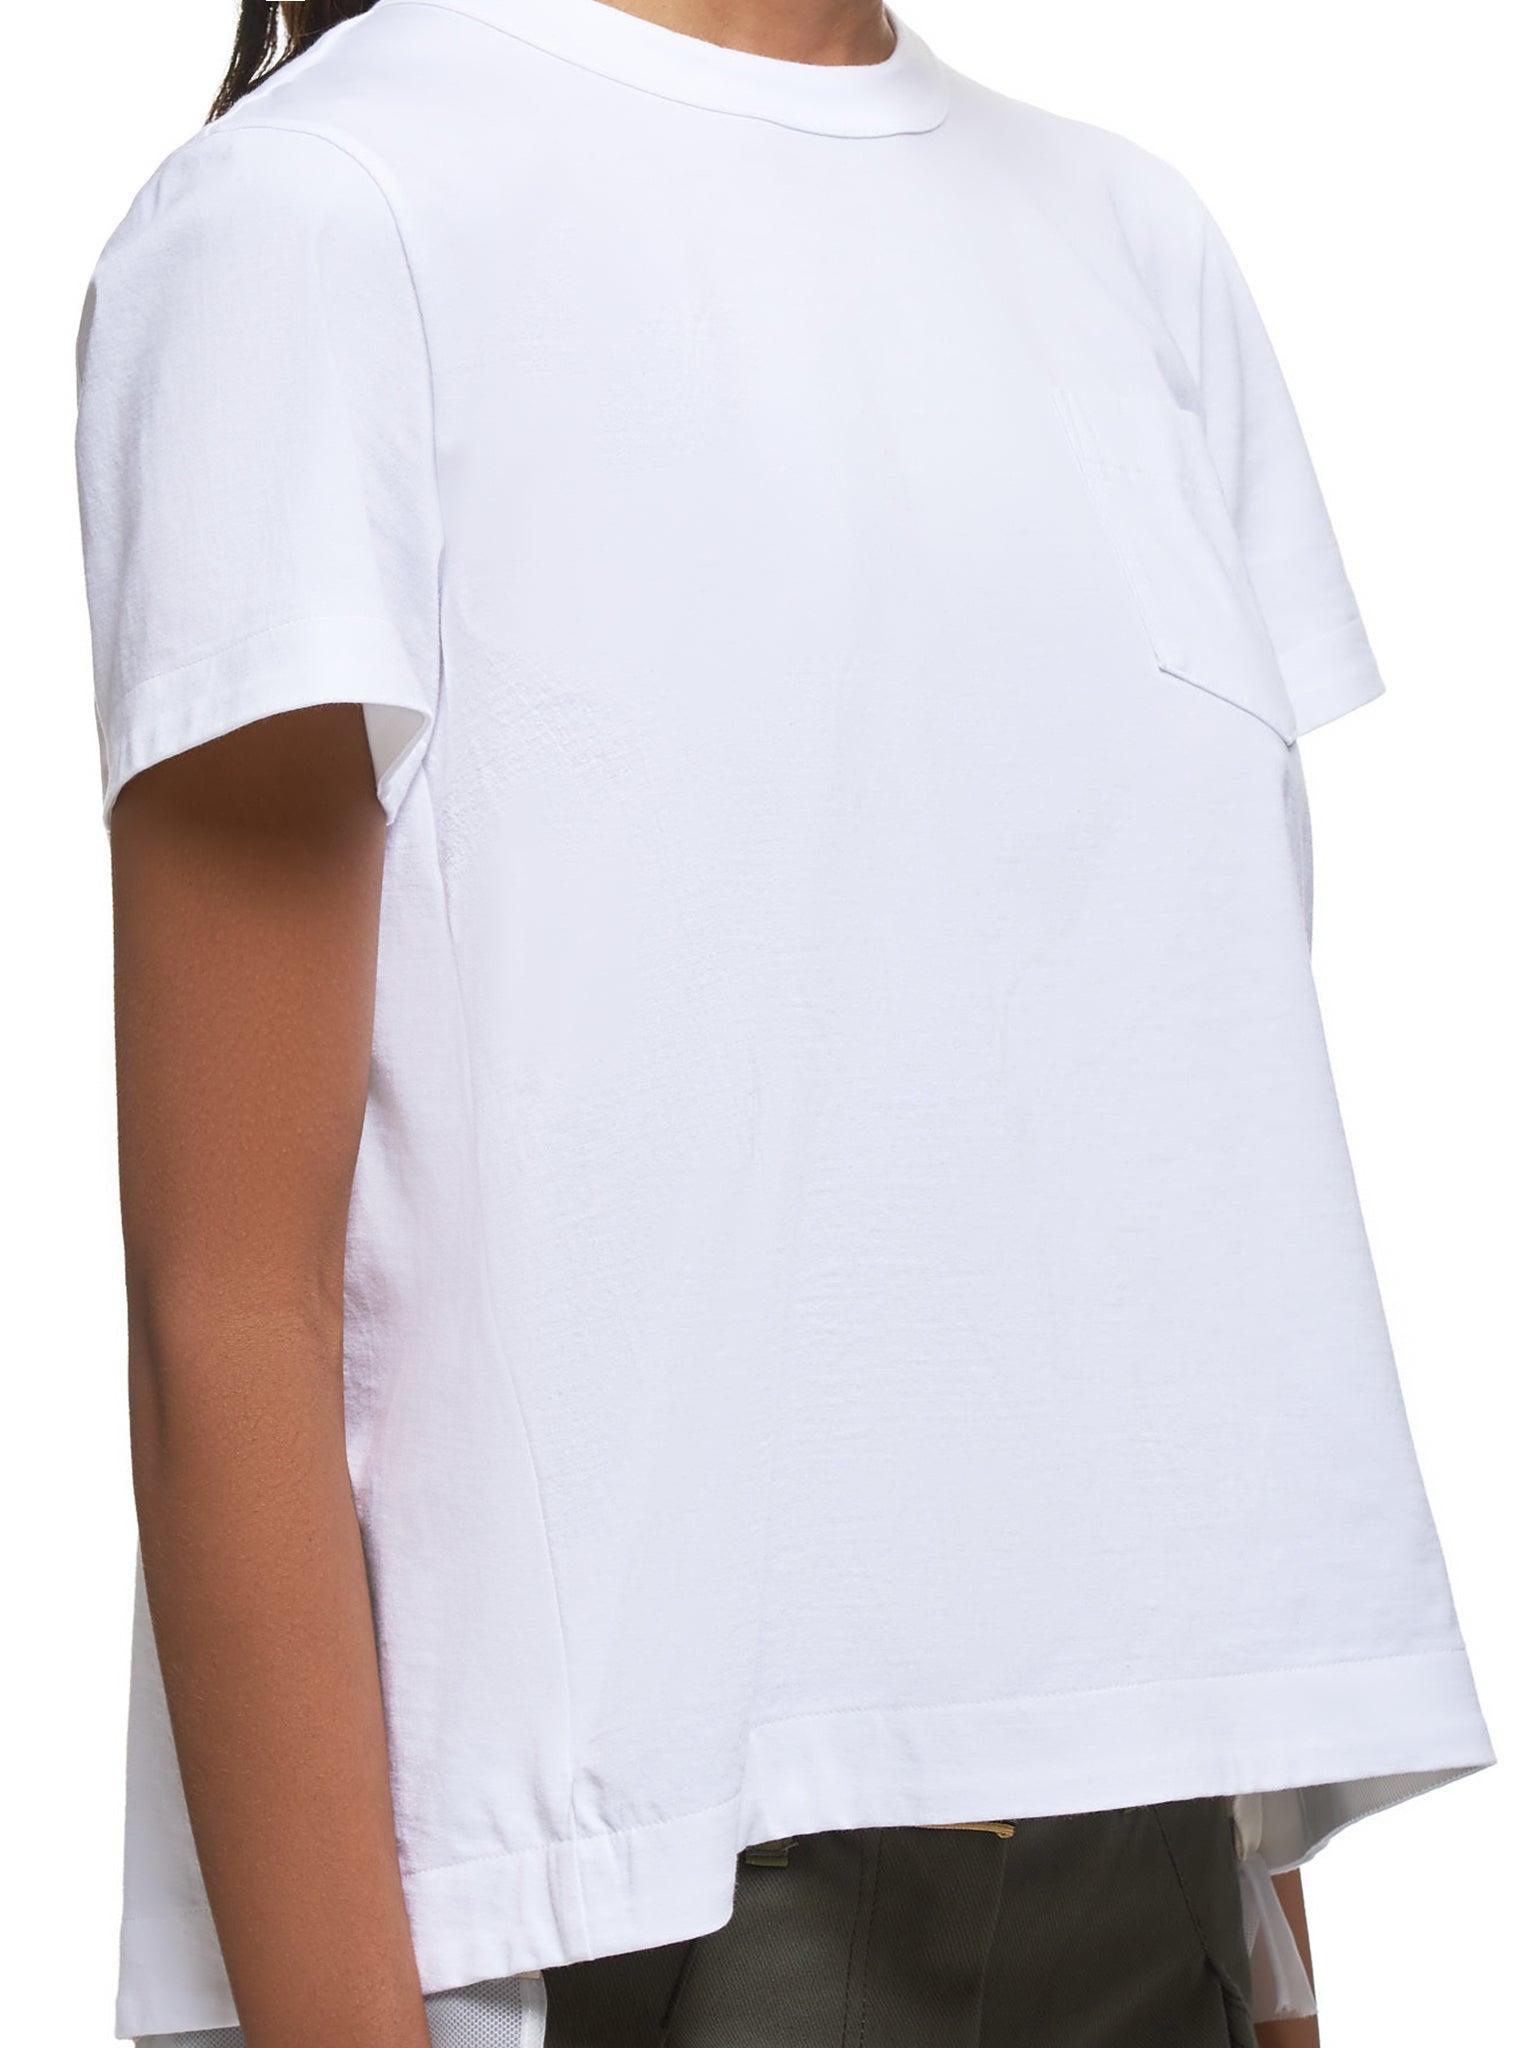 Cut-Out T-Shirt (04881-101-WHITE)